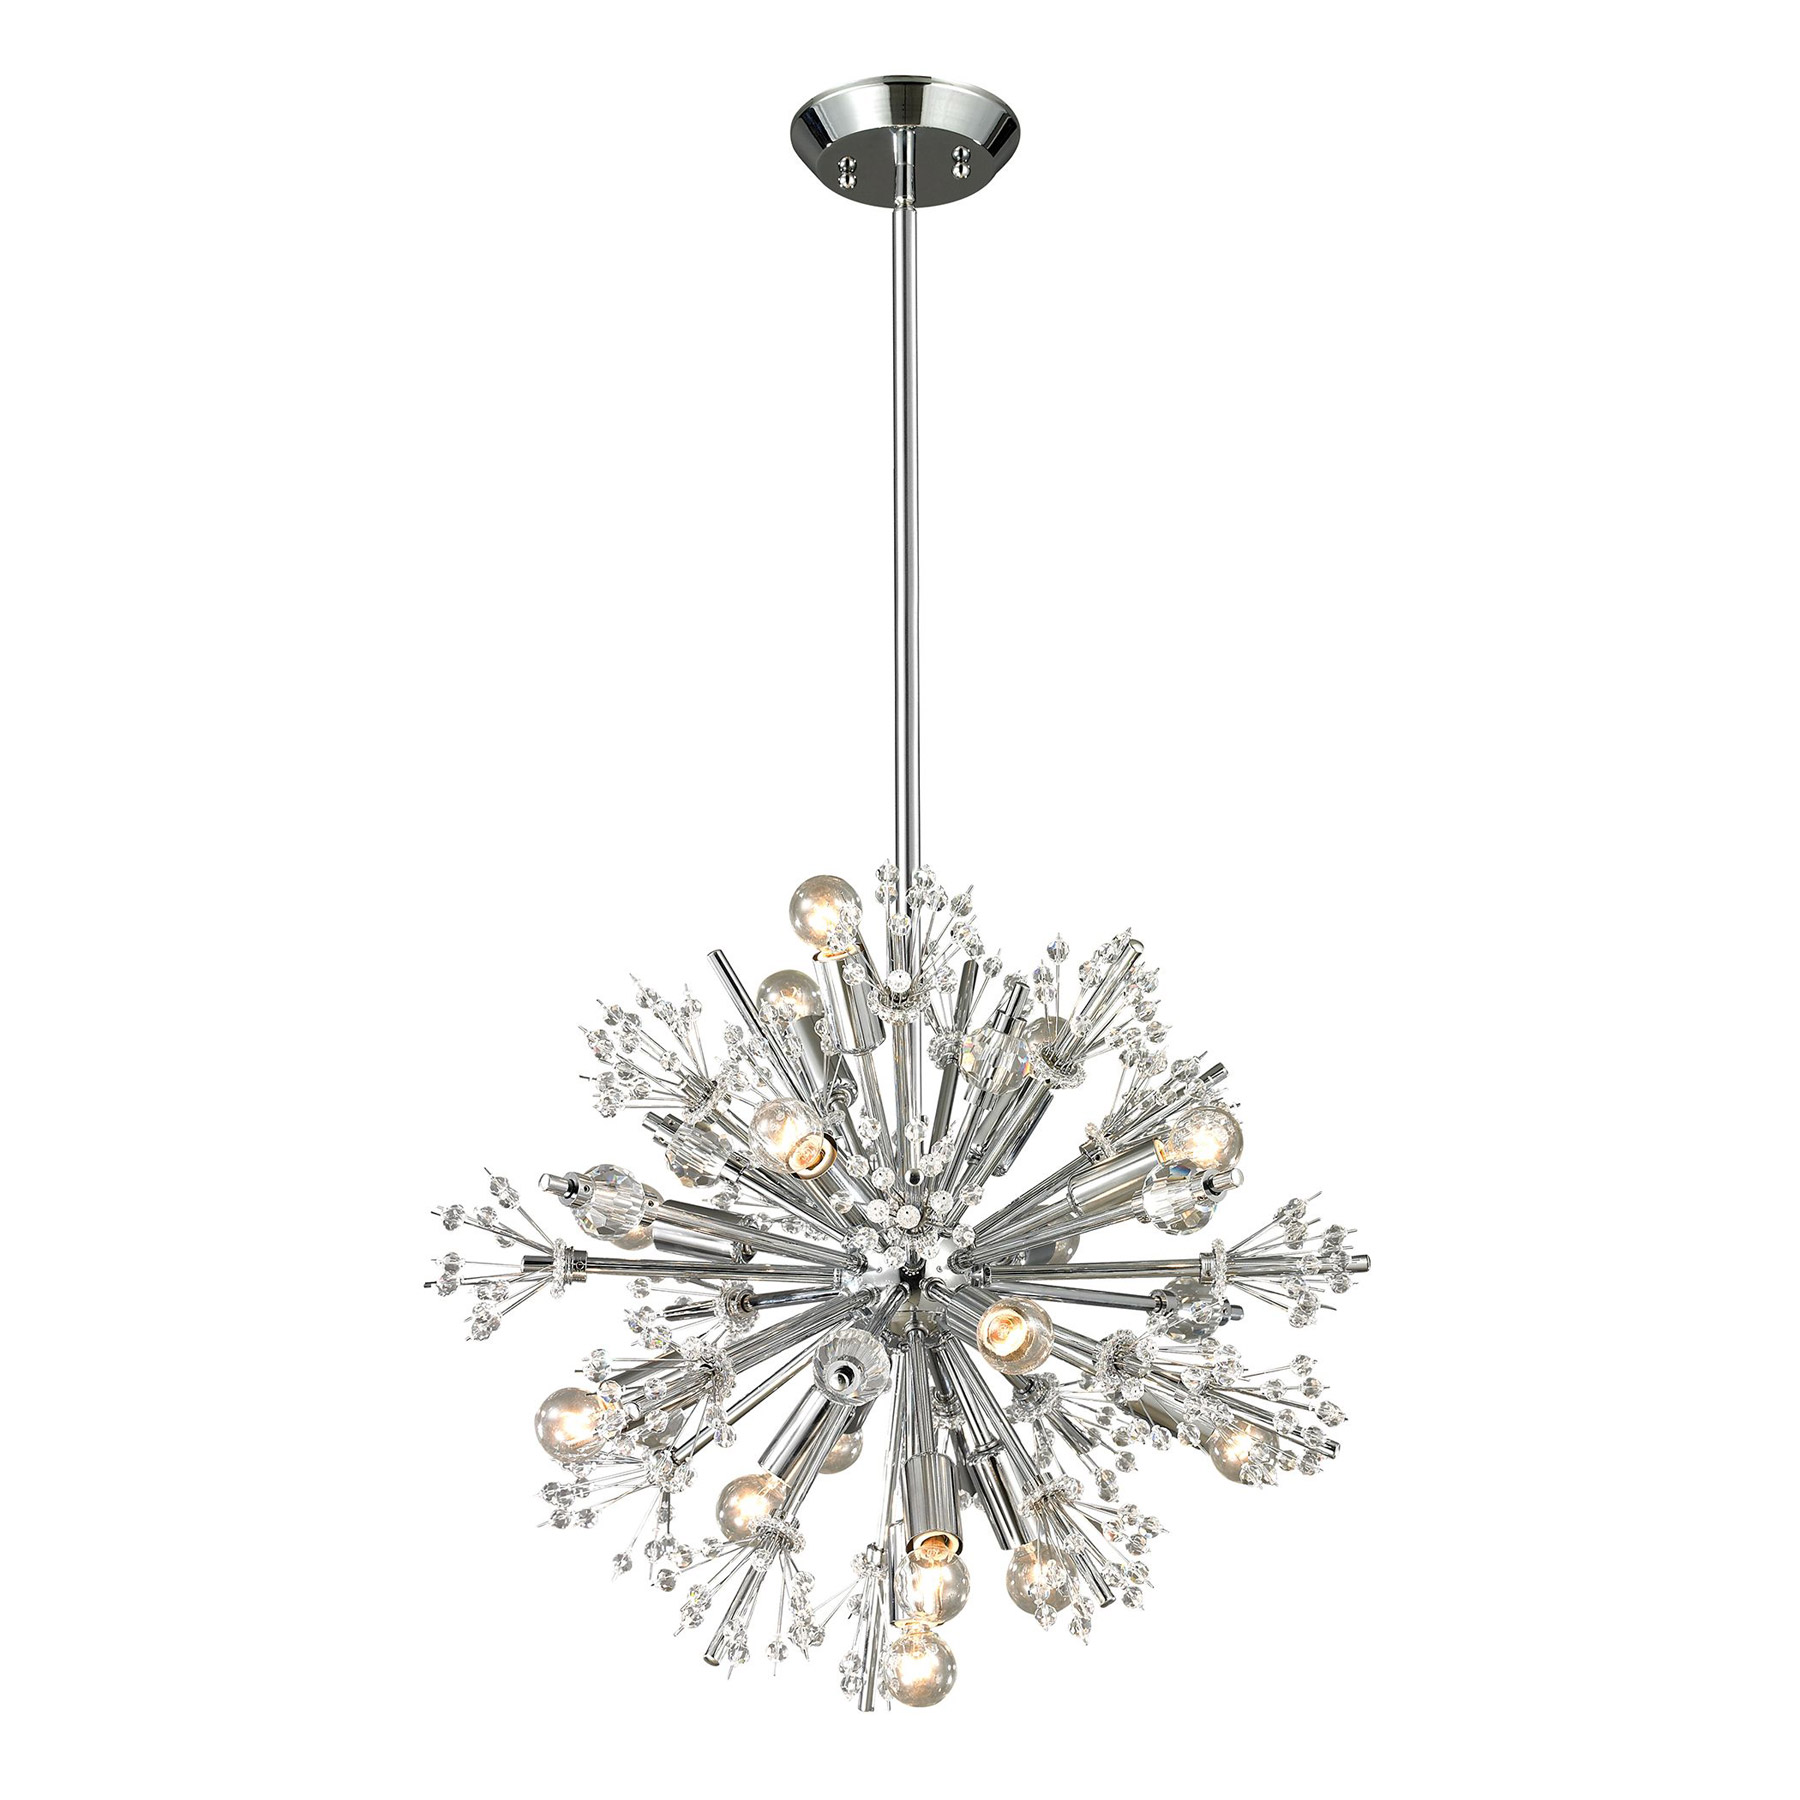 elk lighting starburst 15light small chandelier - Starburst Chandelier